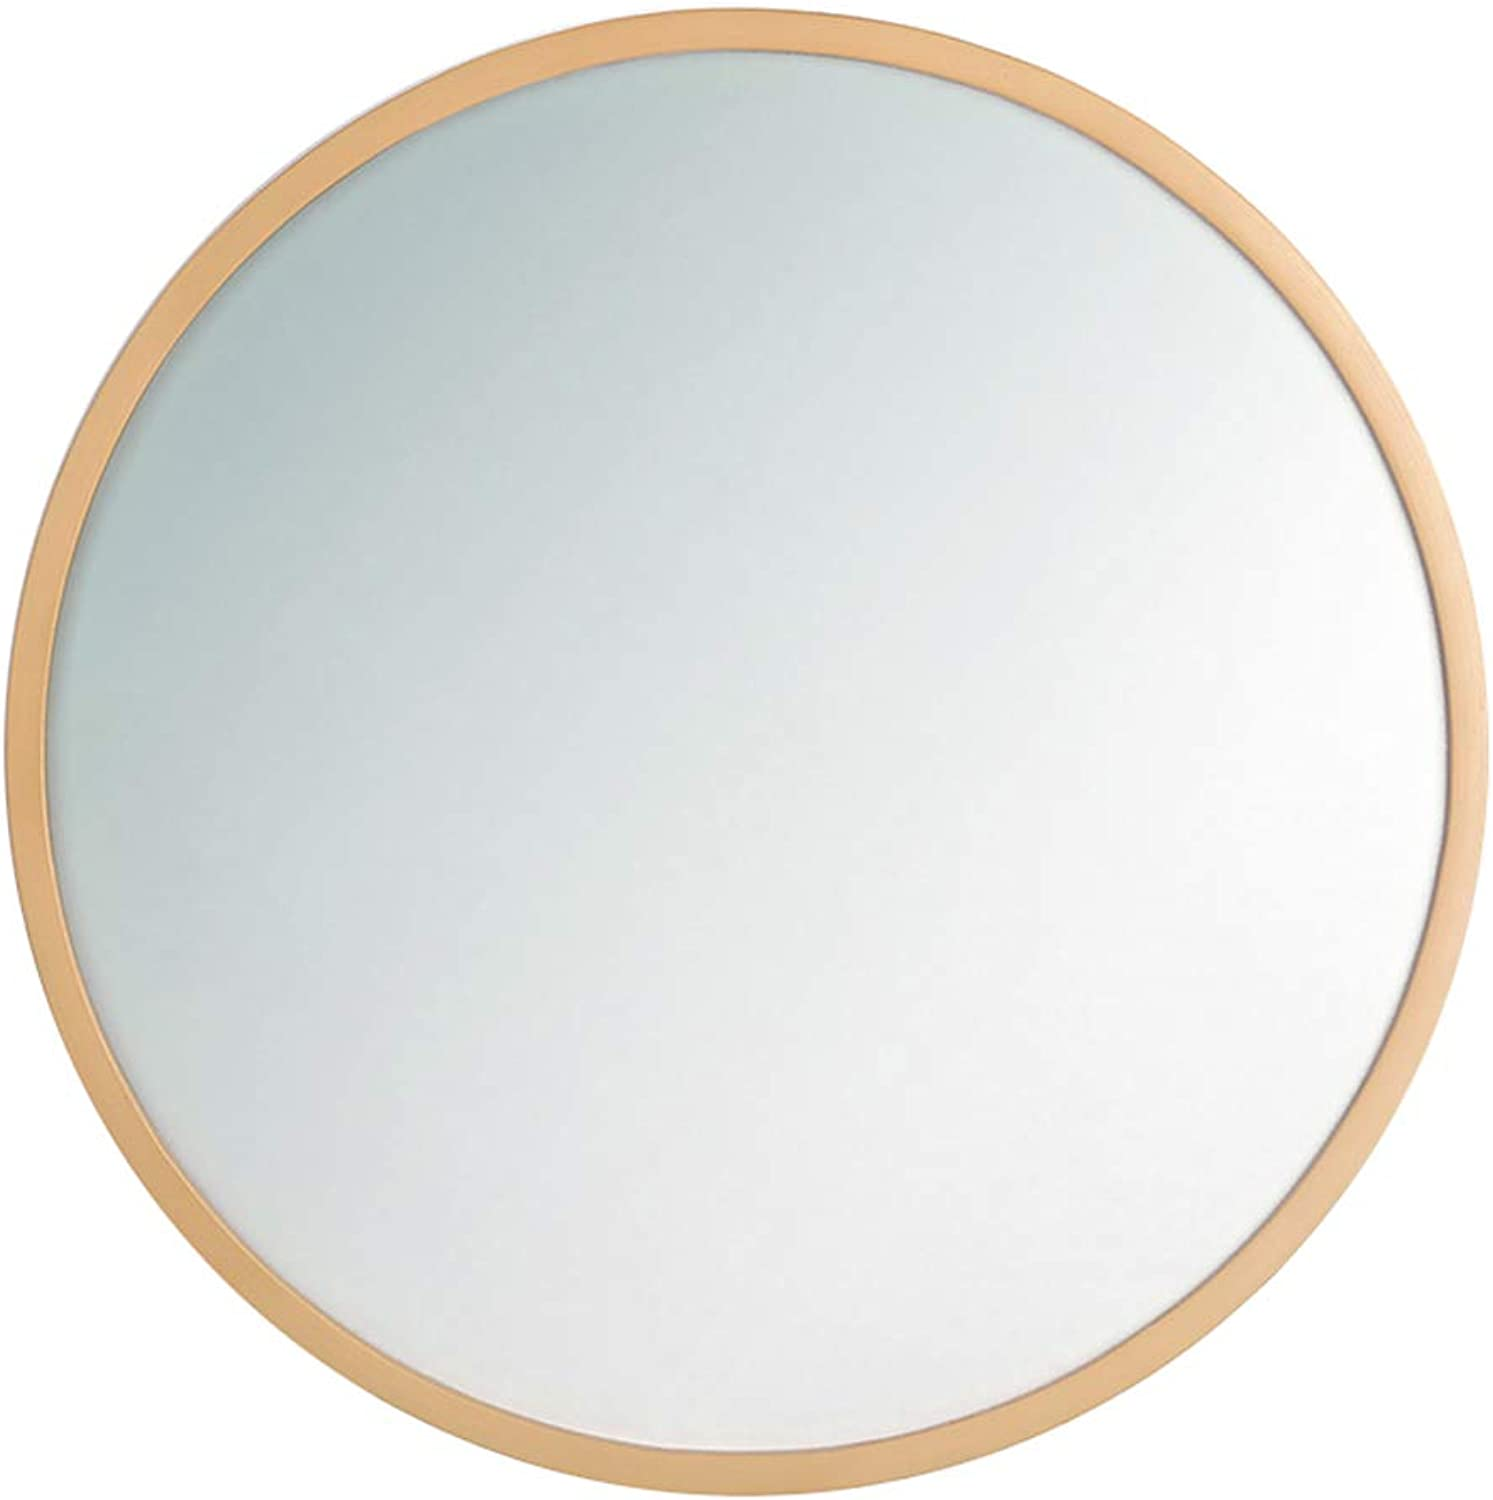 Round Bathroom Wall Mirror Circle Wood Frame Makeup Large Vanity Shaving Home Living Room Concise Bedroom Contemporary (11.8 inch - 31.5 inch)